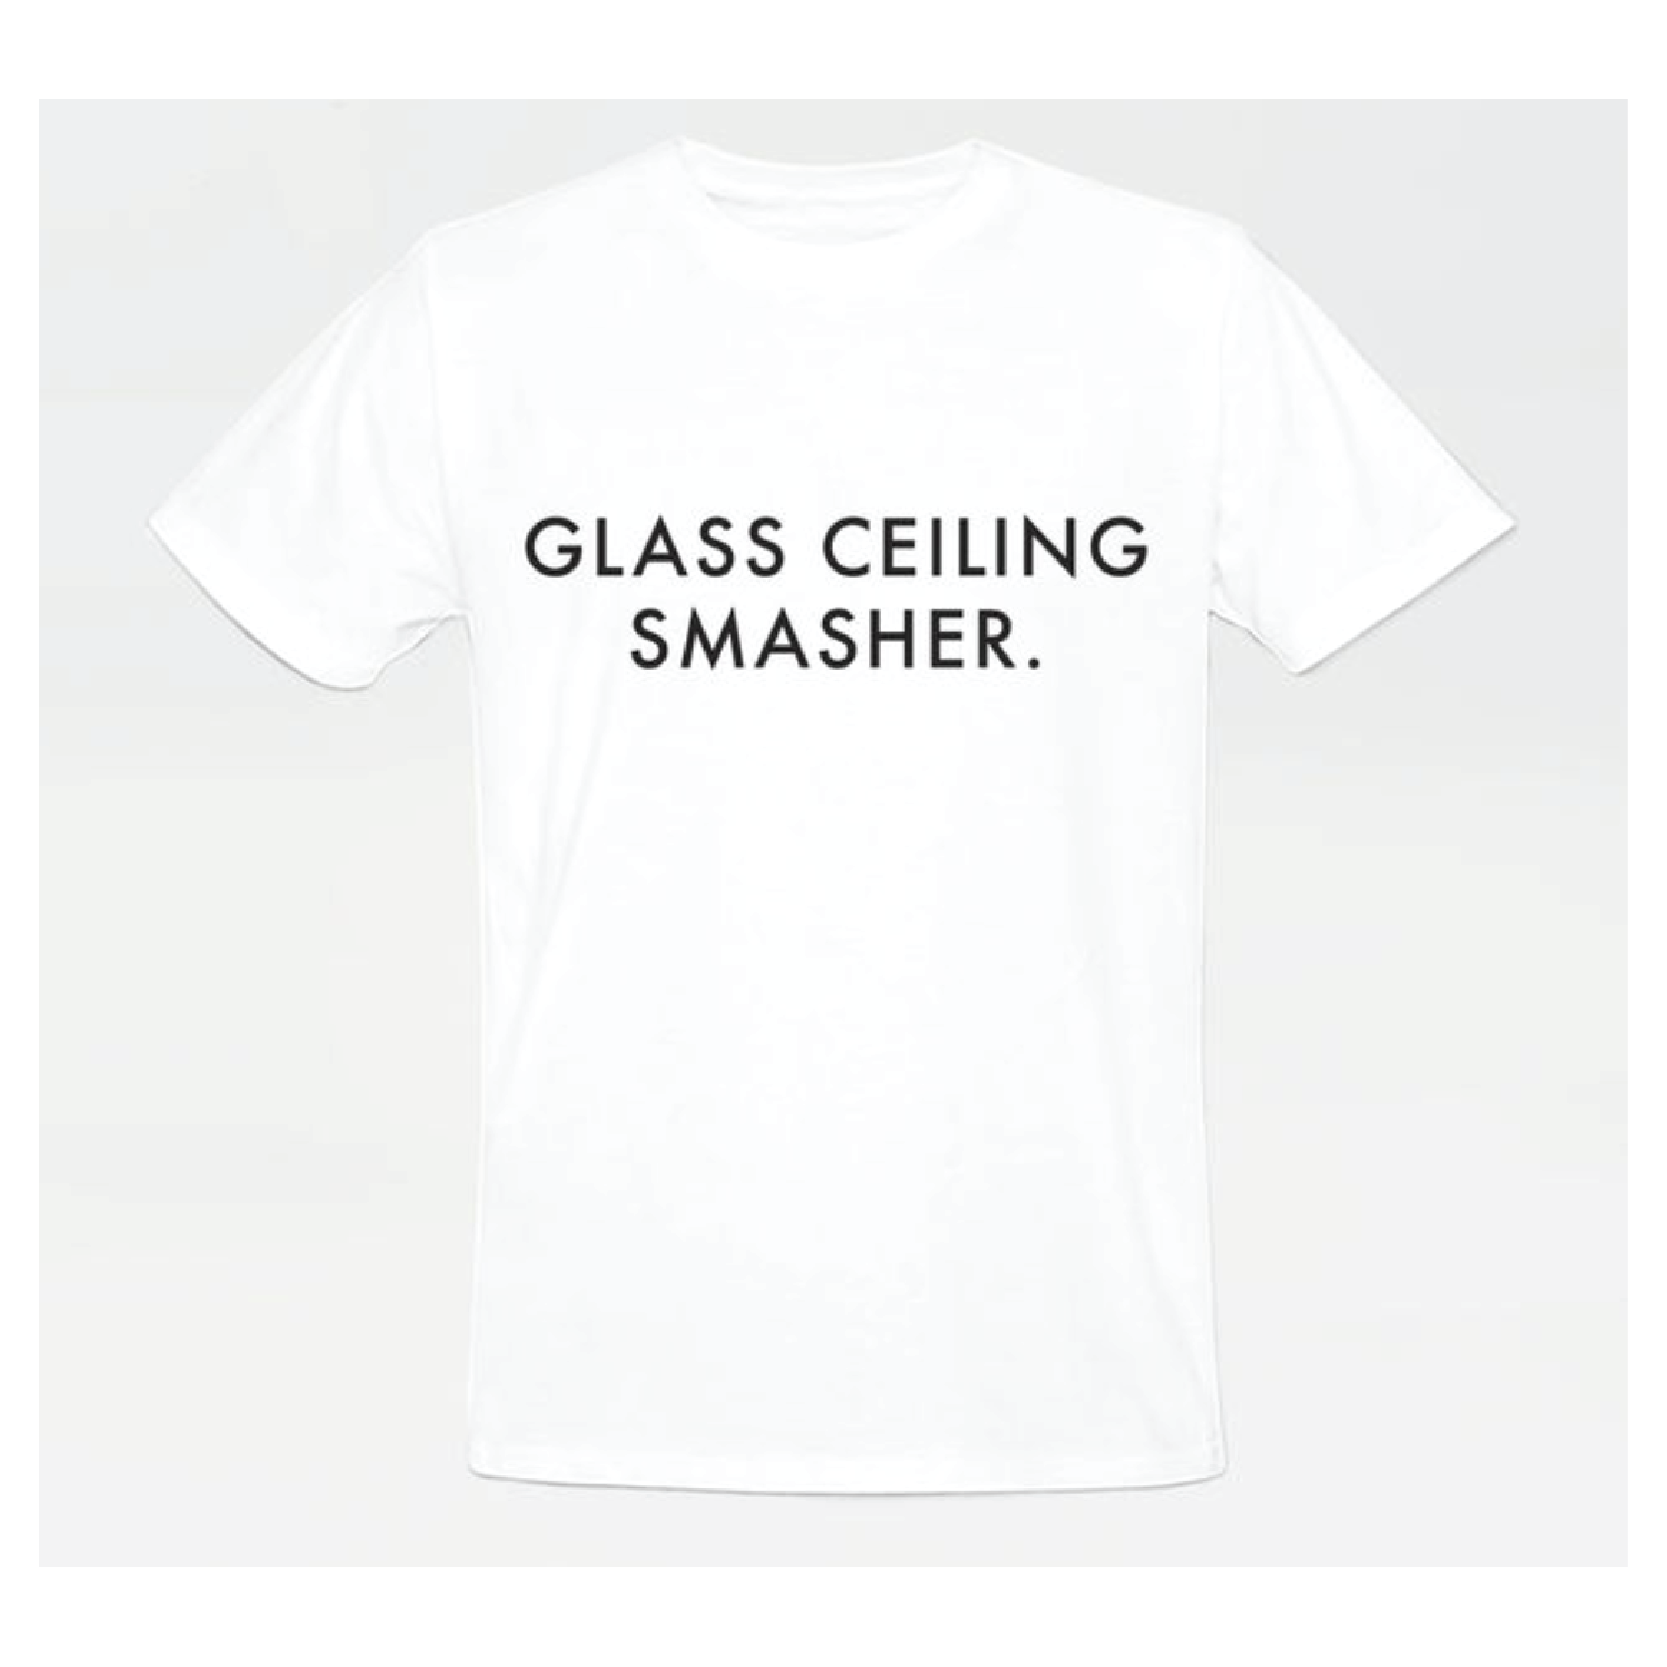 Glass Ceiling Smasher T-shirt - $30 on Living ProofLiving Proof has come out with a line of empowering t-shirts, perfect for the glass ceiling smashers in your life.